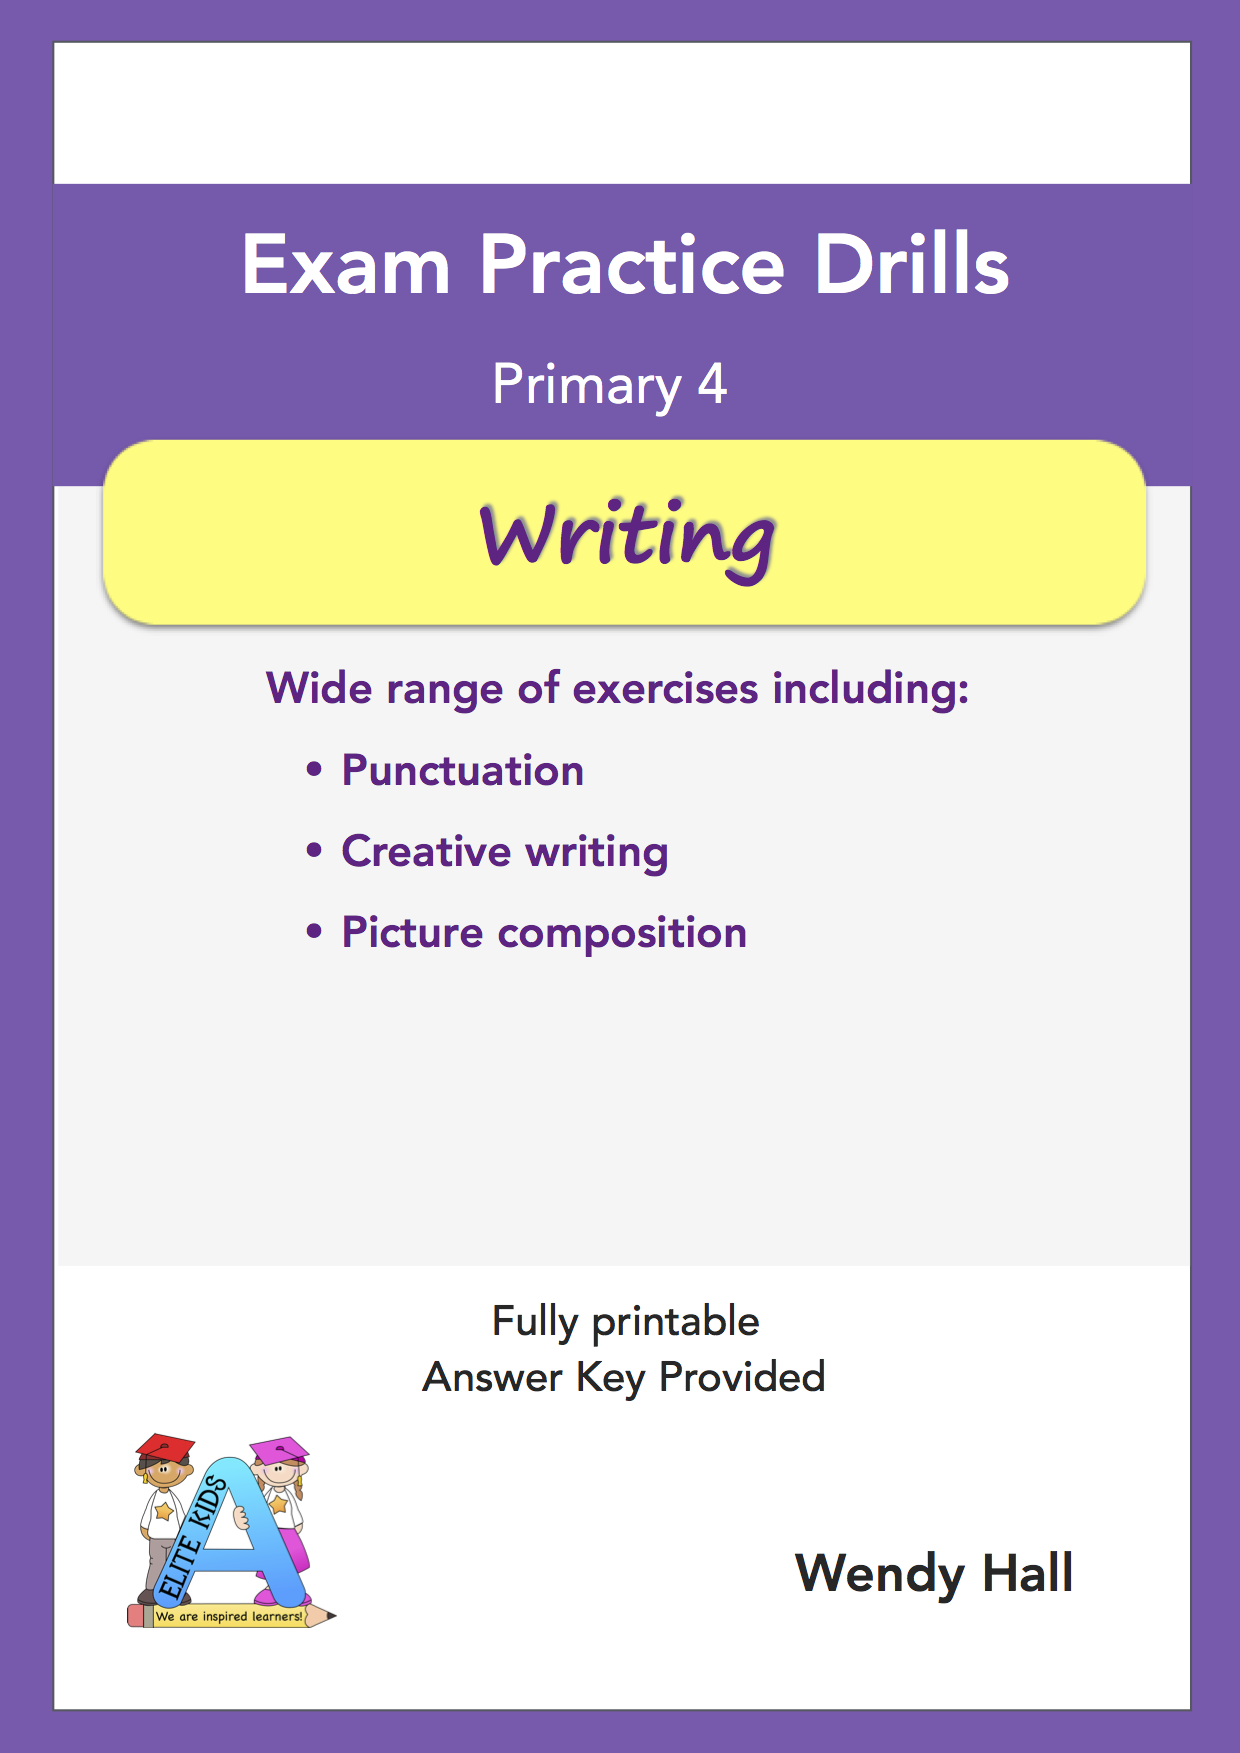 Elite Kids | Exam Practice Drills - Writing - Primary 4